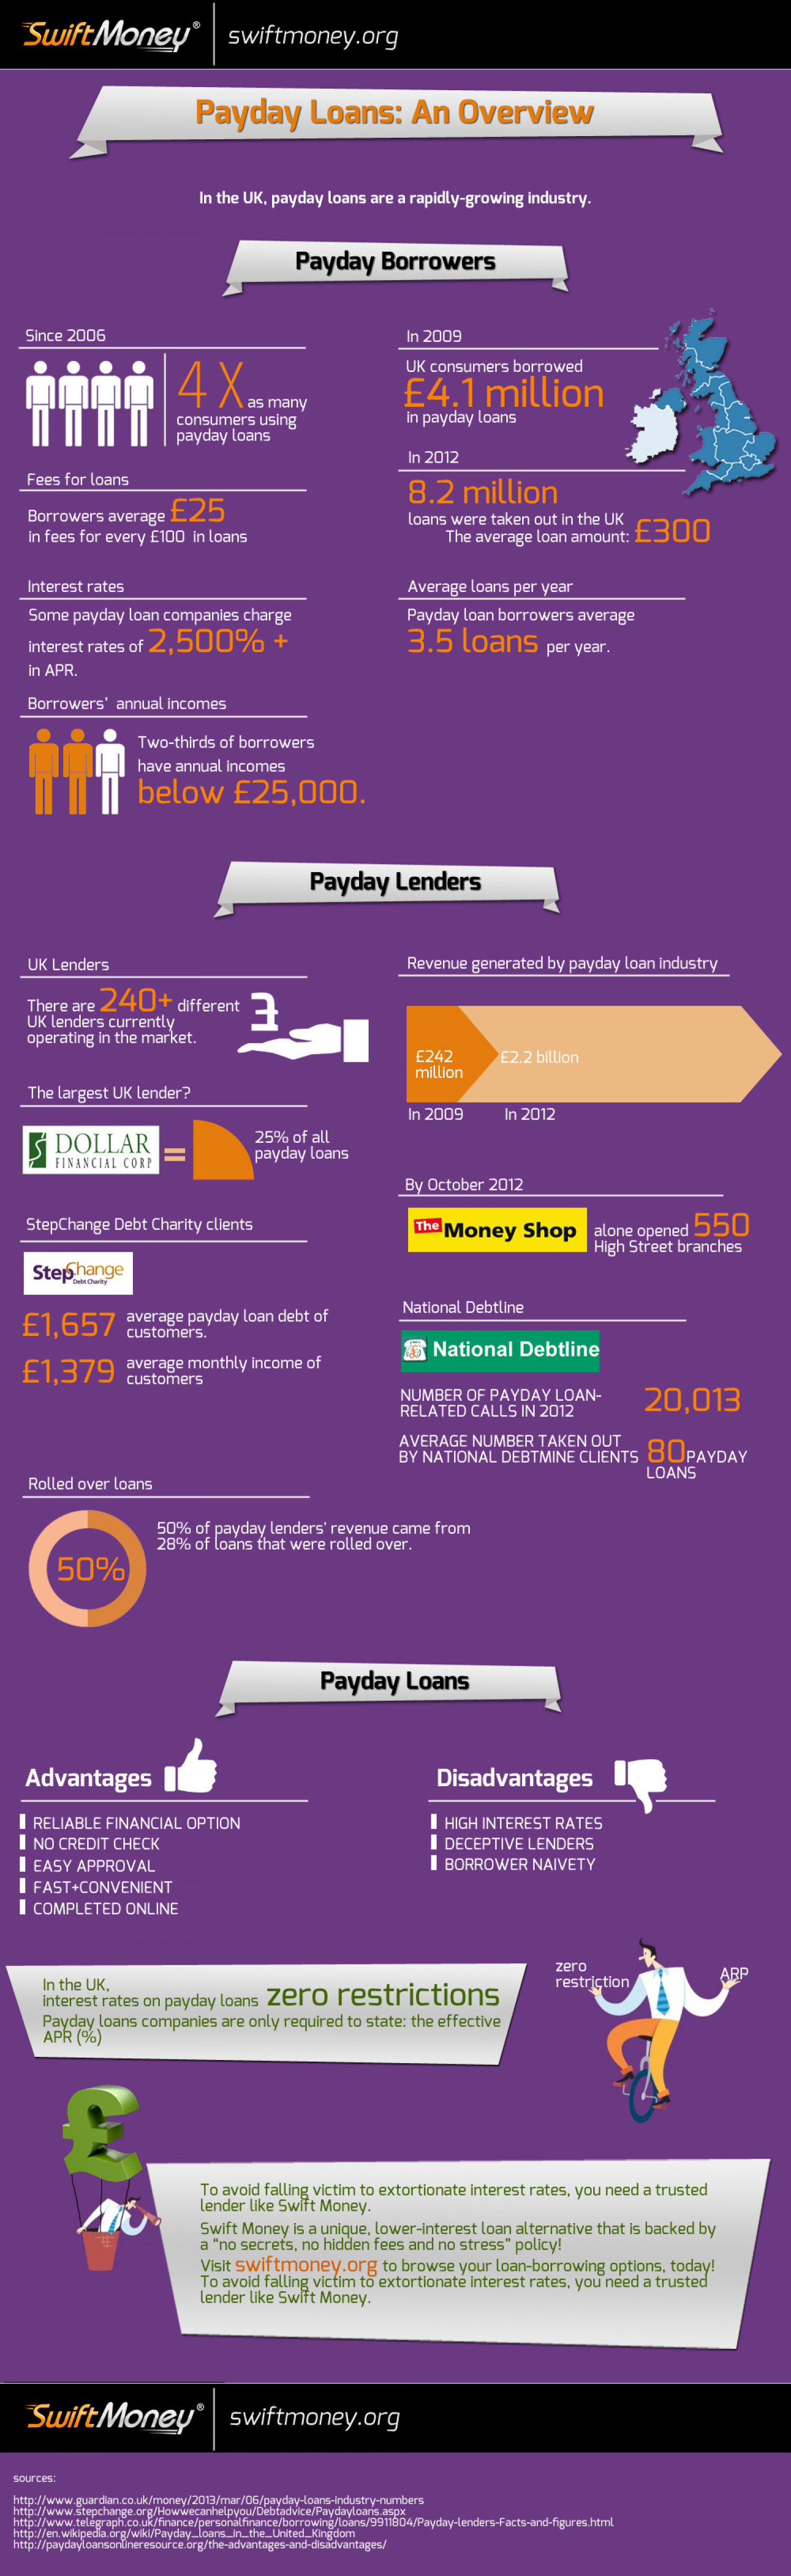 Payday Loans : An Overview Infographic